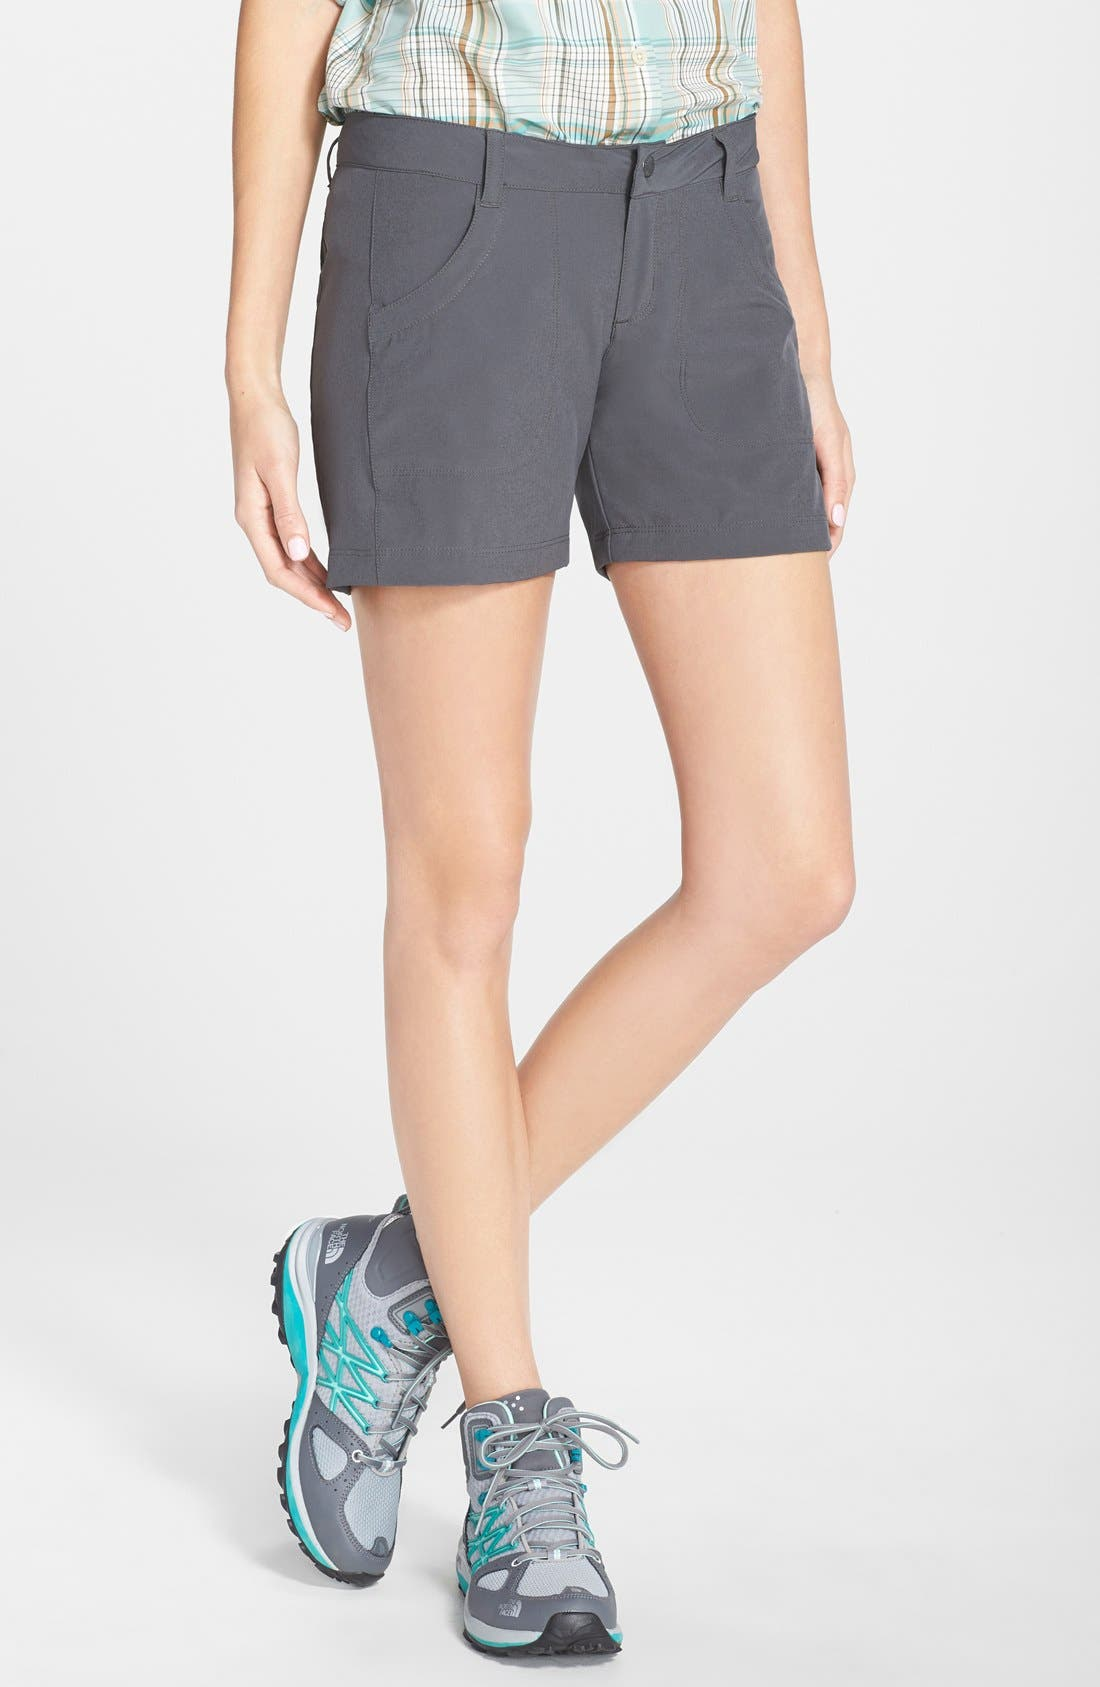 PATAGONIA 'Happy Hike' Shorts, Main, color, 020